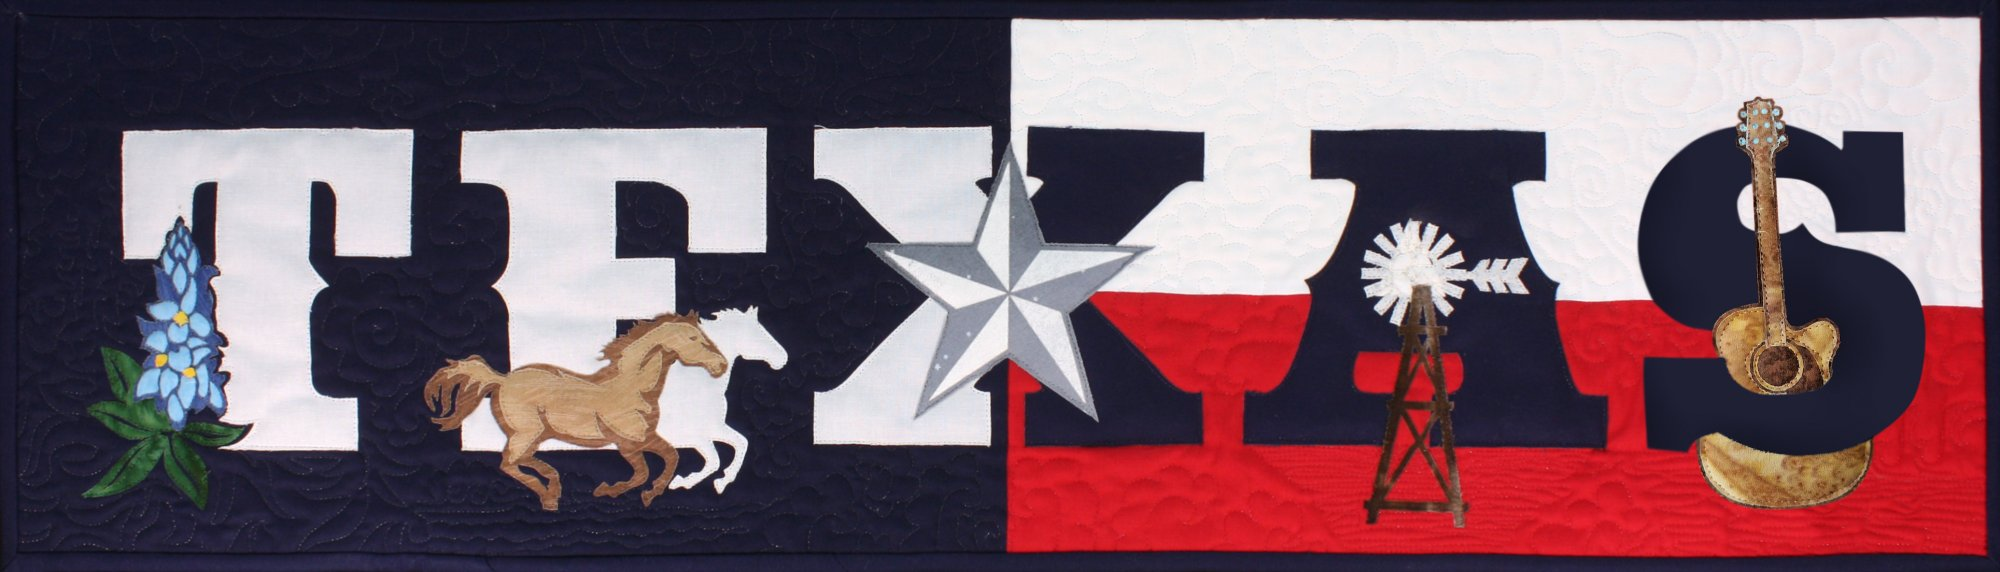 Texas Laser cut applique kit includes front and binding - SP-TEXS-1